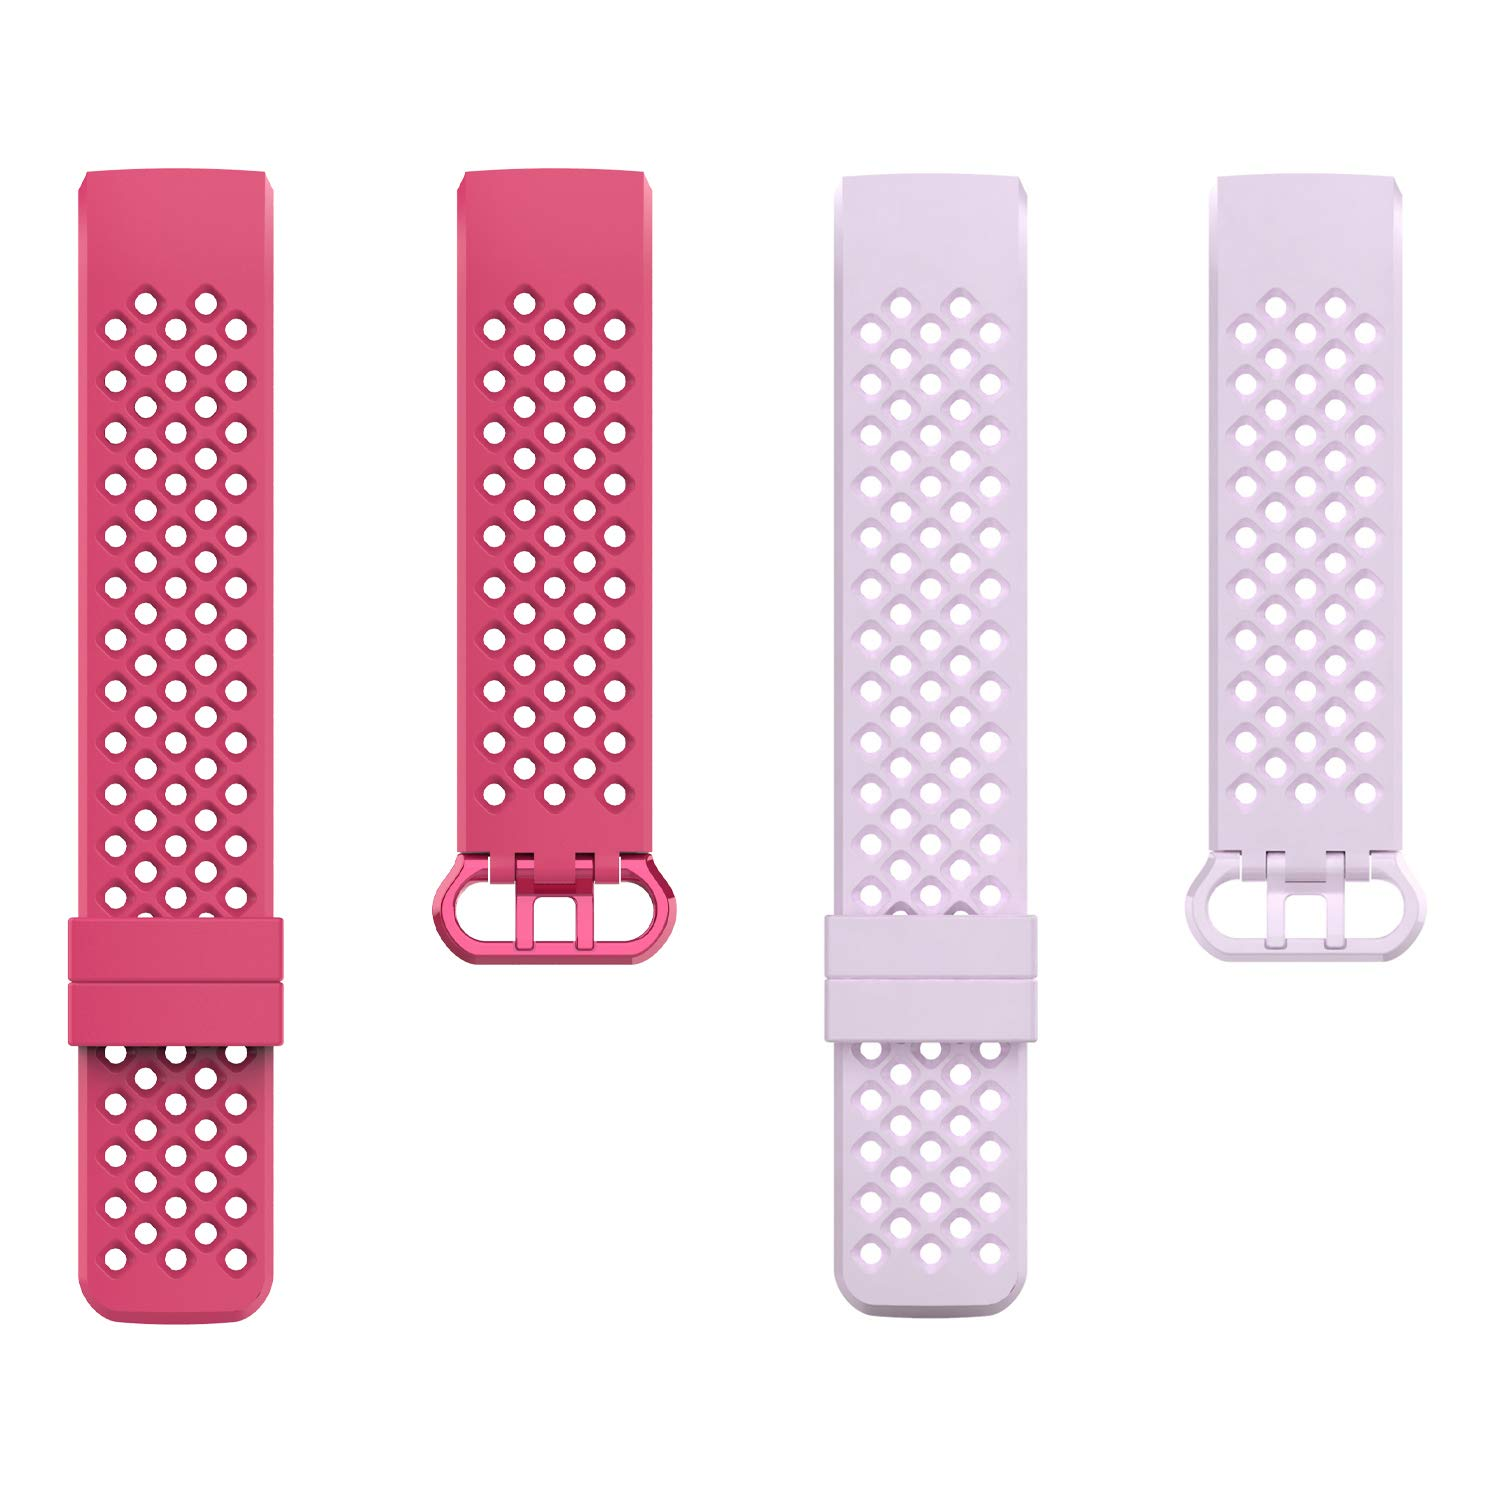 adepoy Compatible with Fitbit Charge 3 Bands for Women Men Large Small Breathable with Air Holes Replacement Wristbands for Fitbit Charge 3 and Fitbit Charge 3 SE